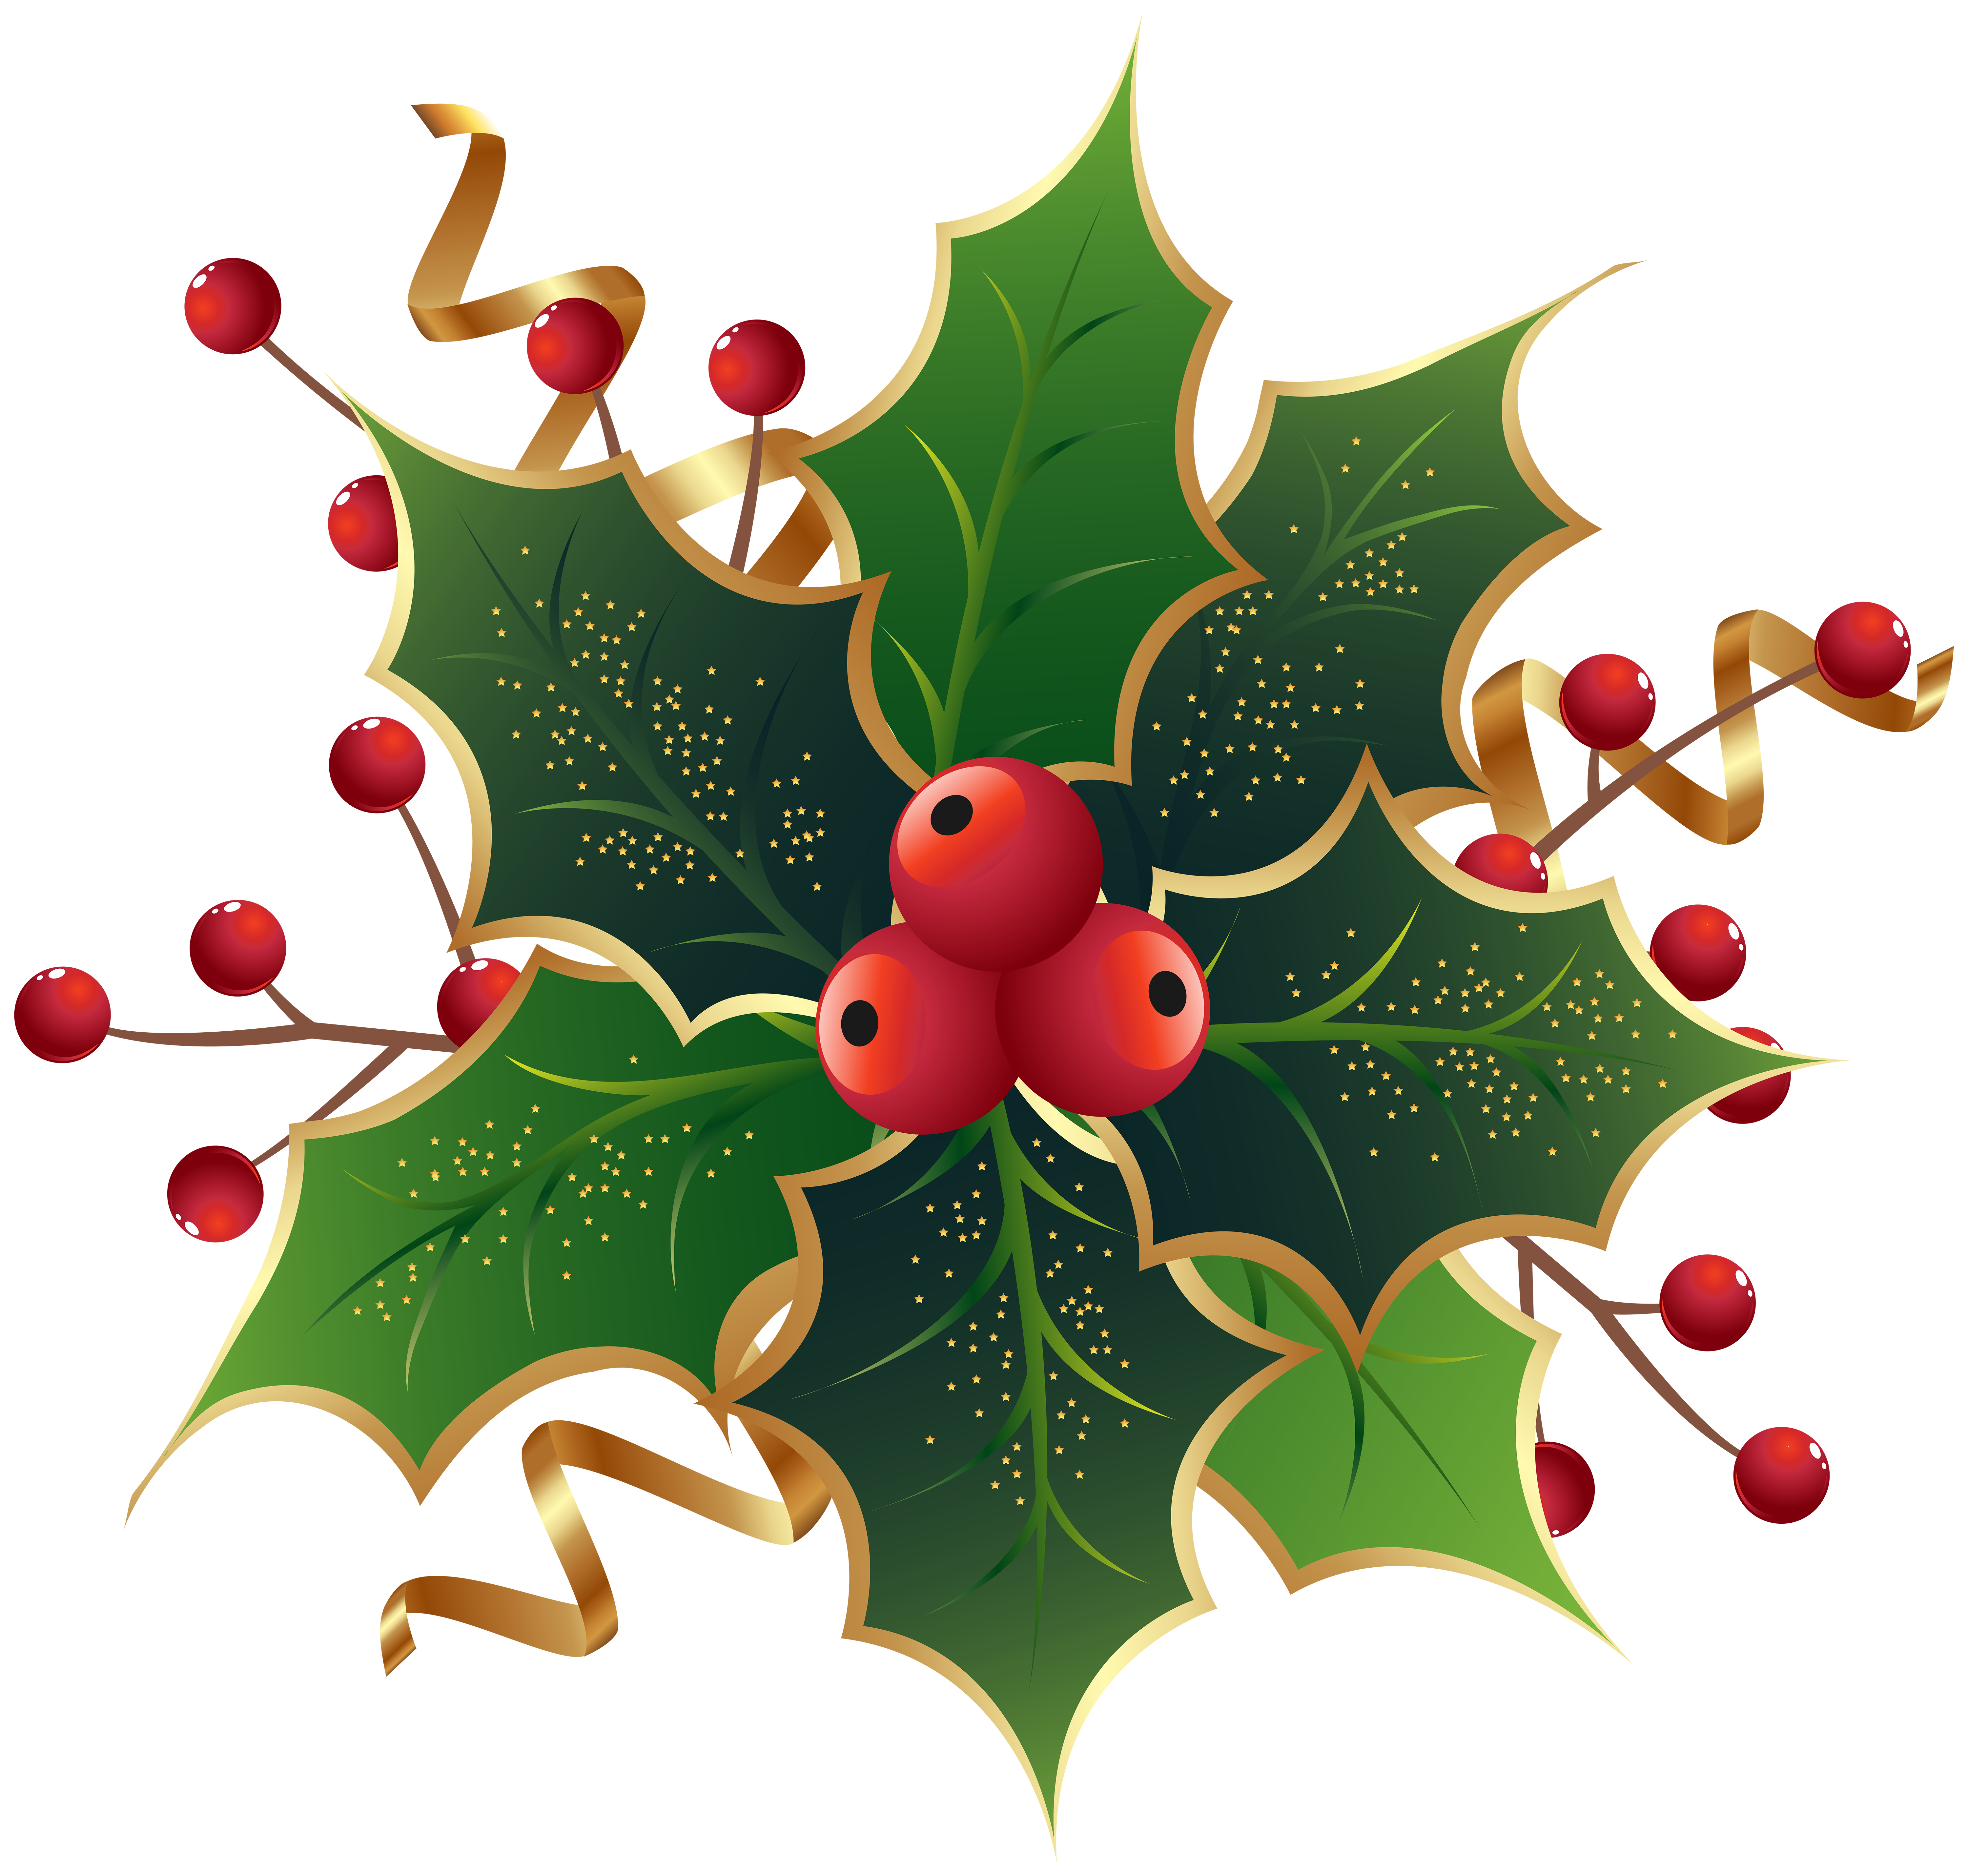 Christmas clipart holly clipart royalty free download Christmas Holly Mistletoe PNG Clip Art Image | Gallery Yopriceville ... clipart royalty free download